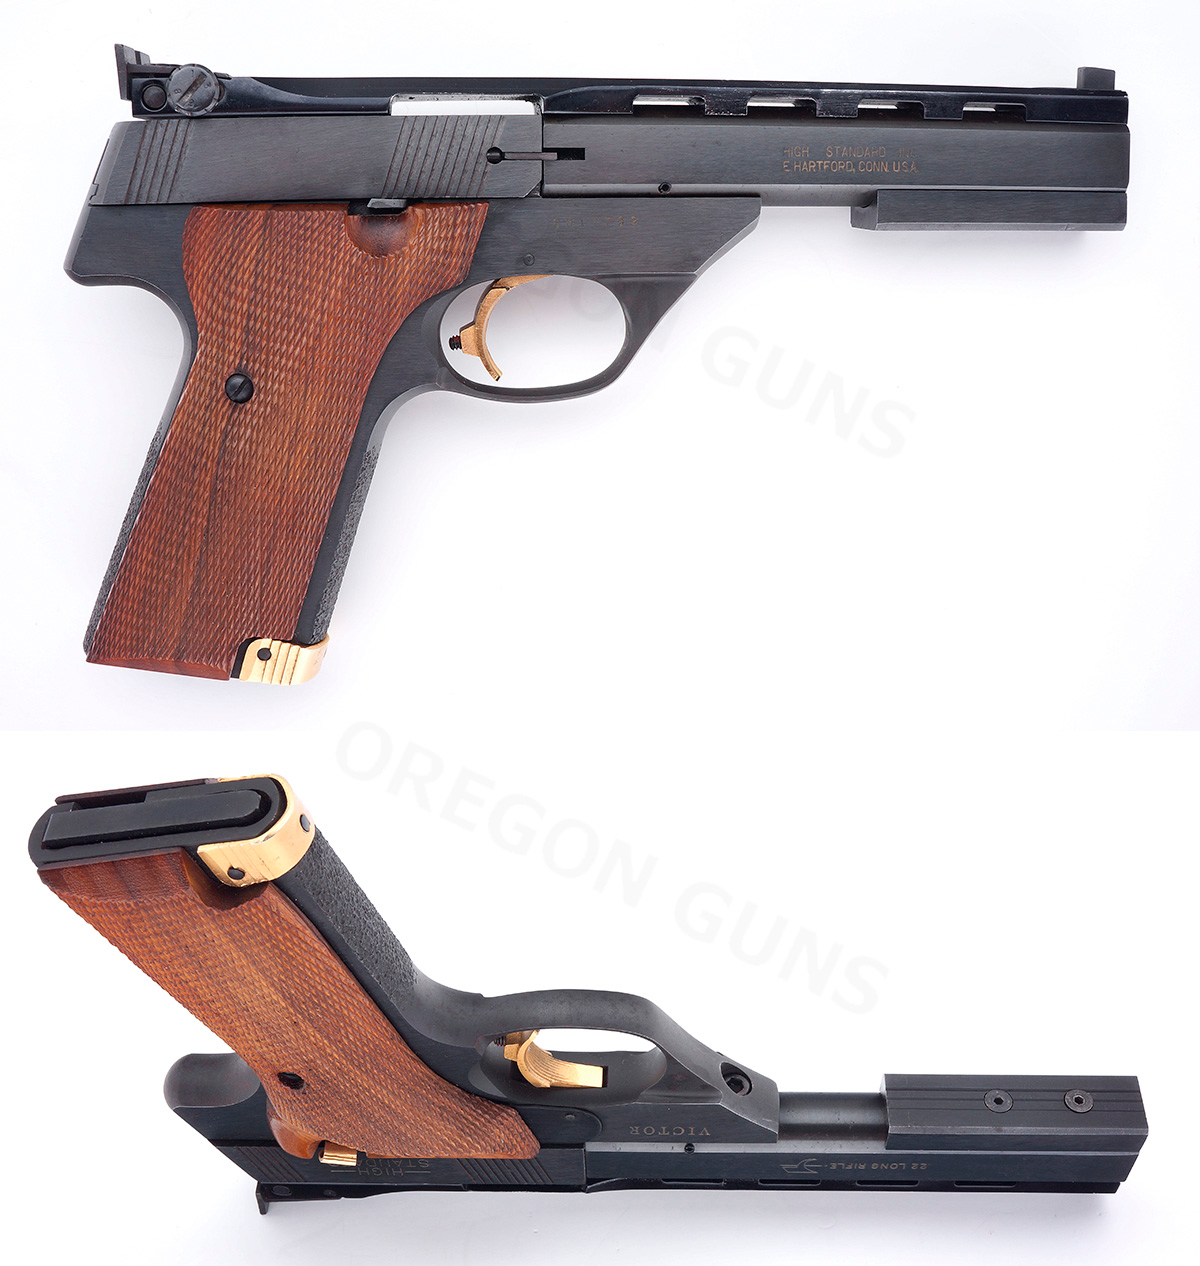 High Standard THE VICTOR SEMIAUTO .22 LR TARGET PISTOL SN# SH17799 .22 LR - Picture 2